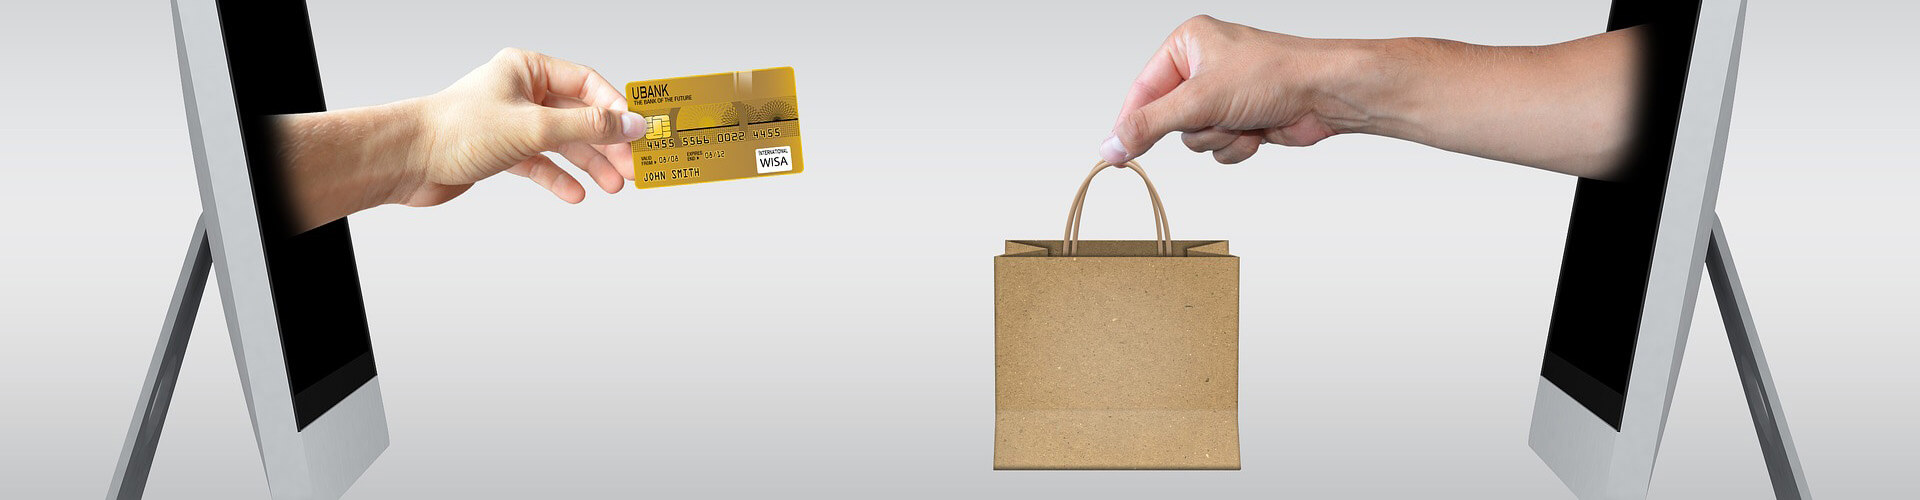 eCommerce payment options Dubai